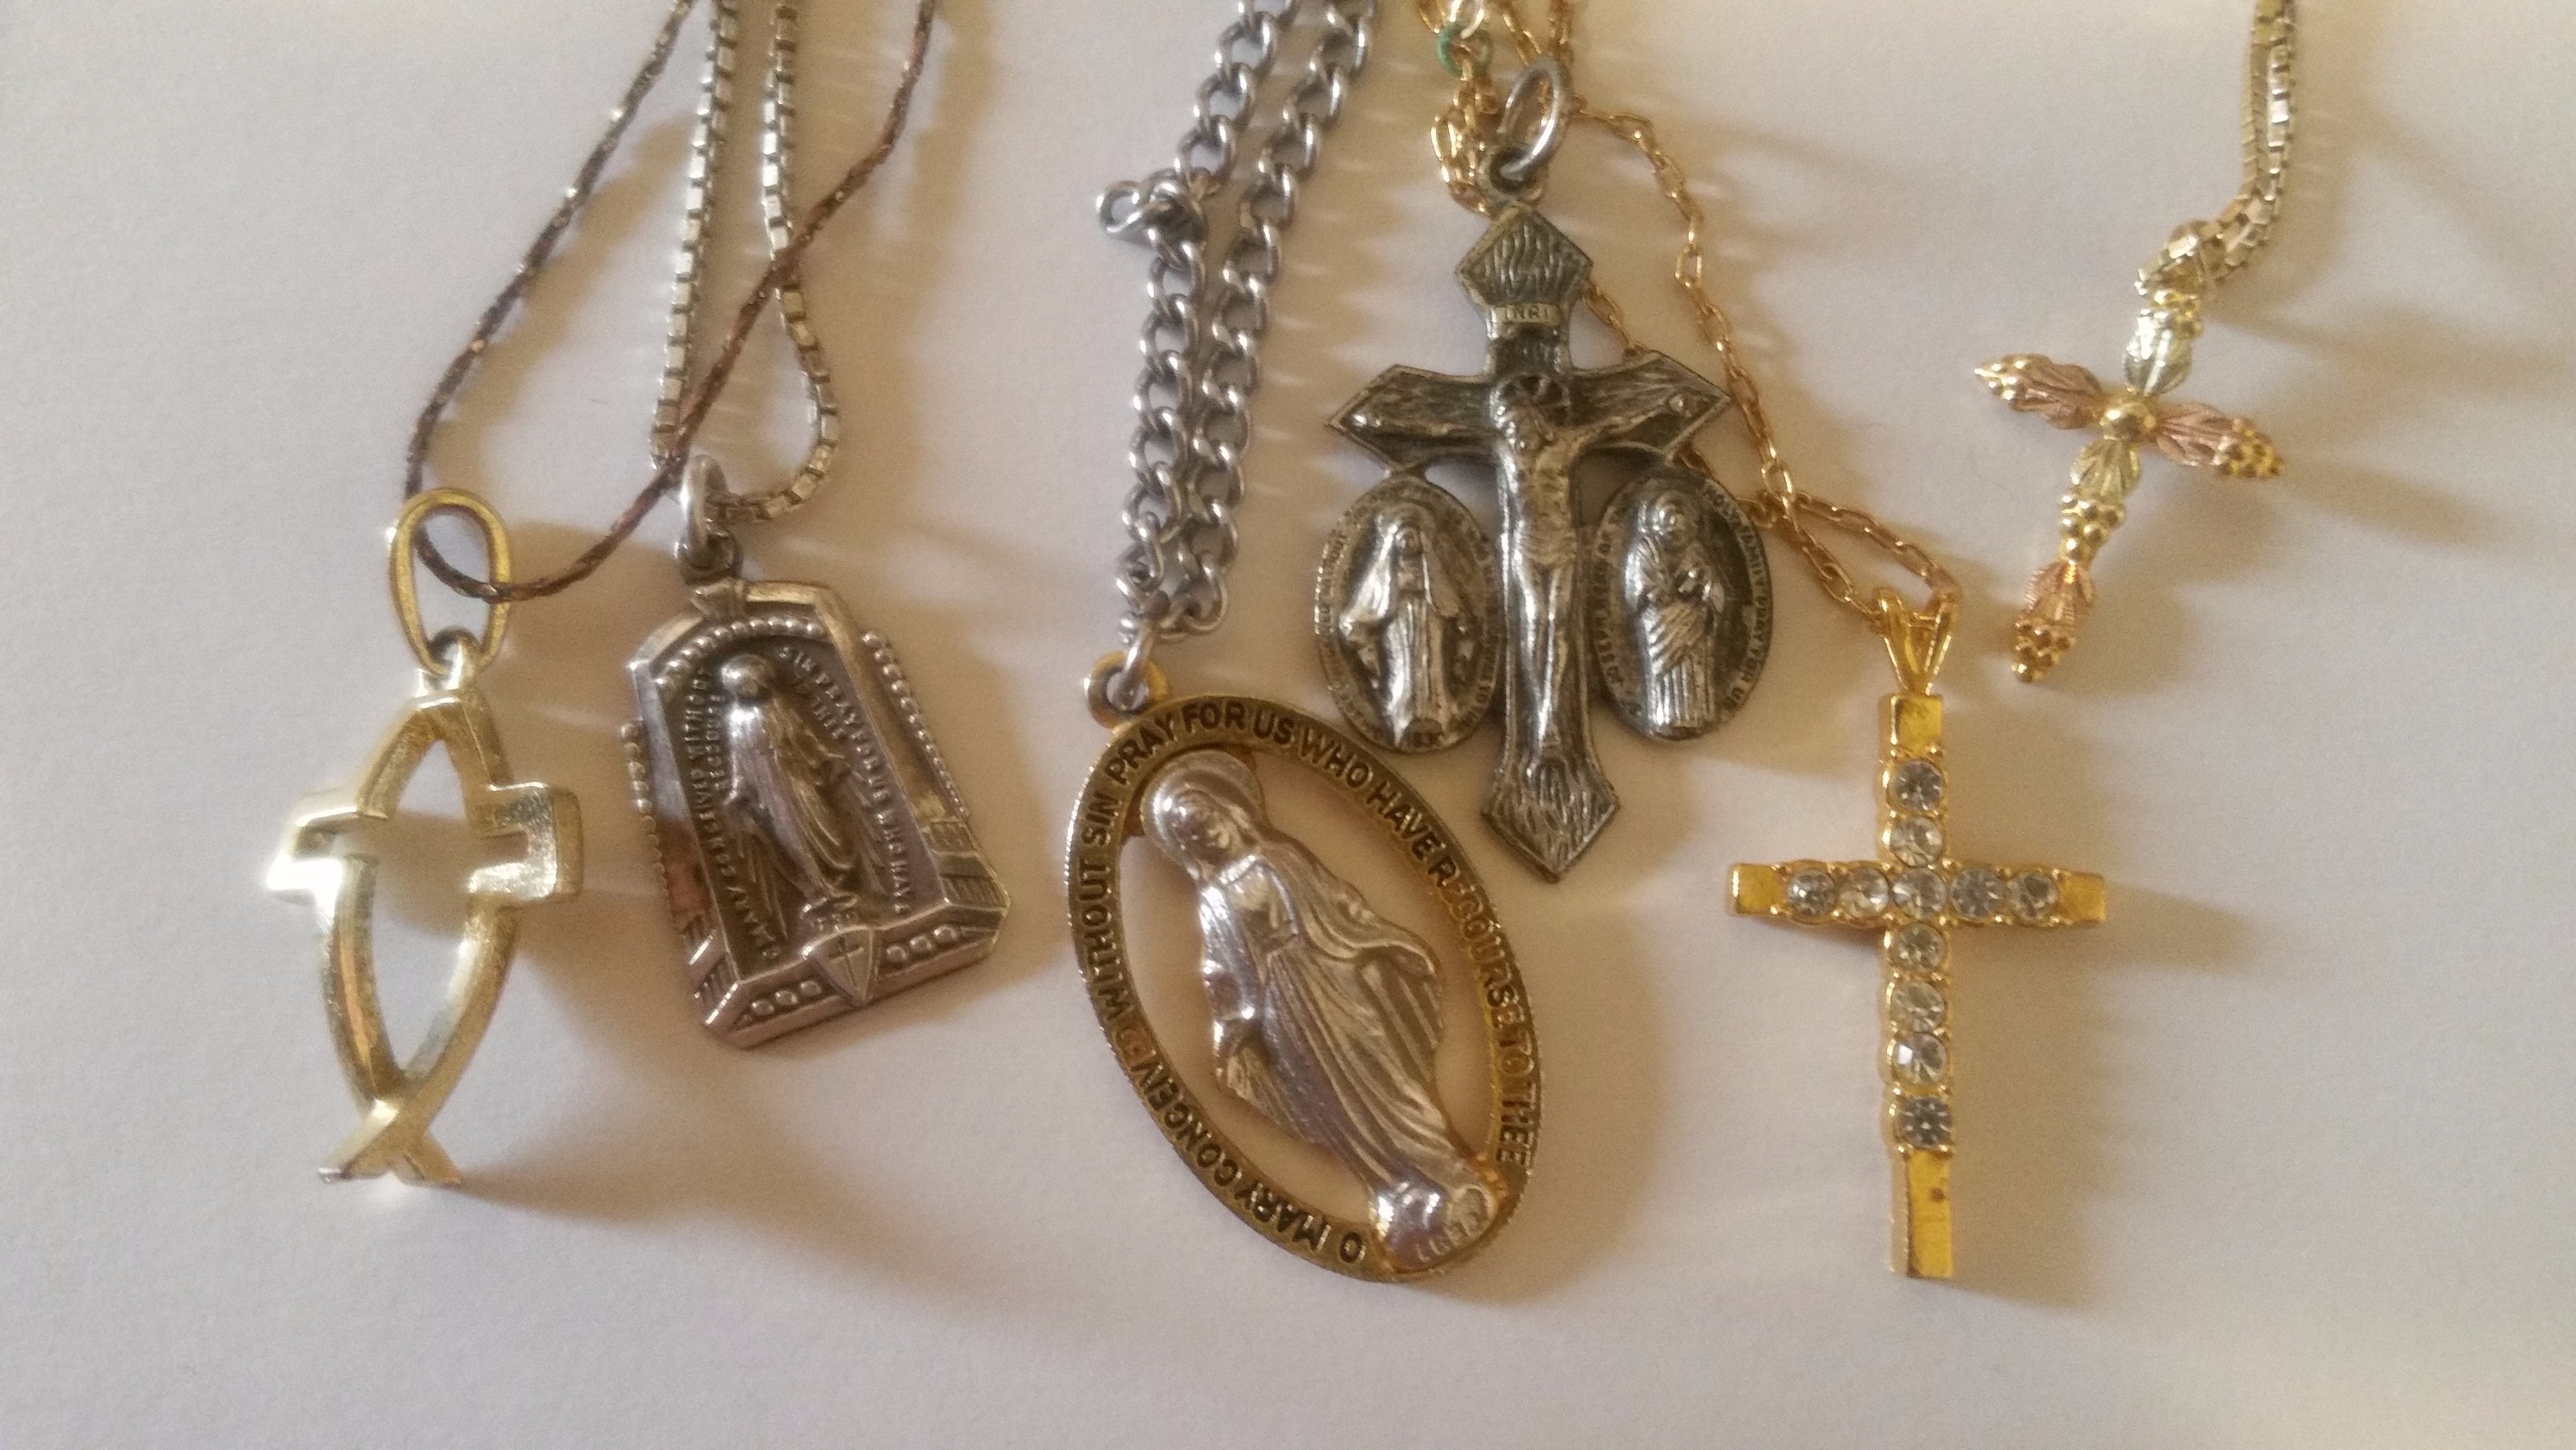 Religious themed necklaces sitting on a white background.